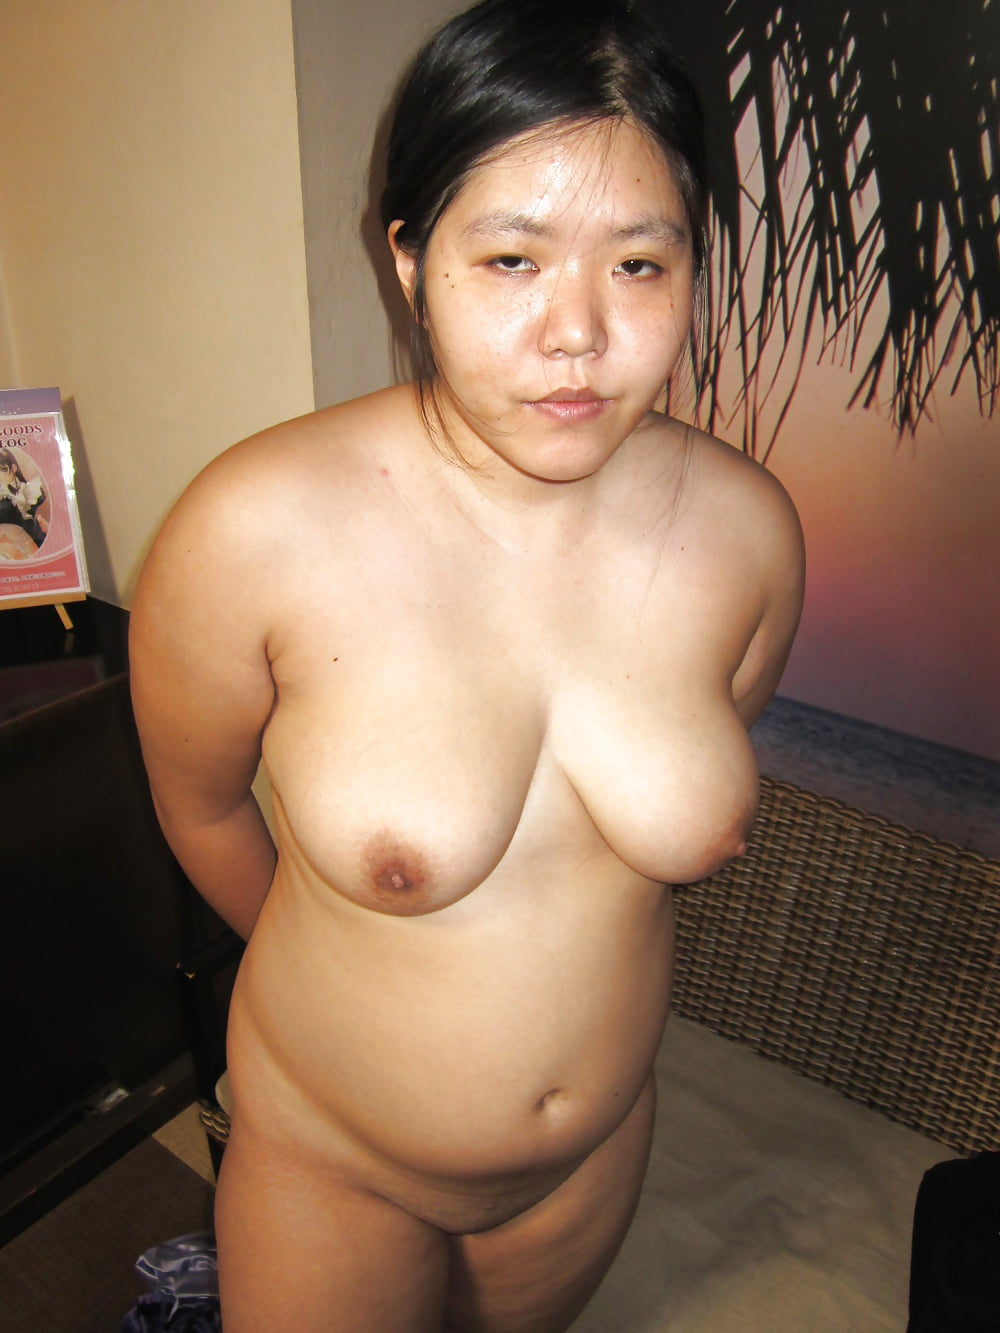 Chubby malay girl nude